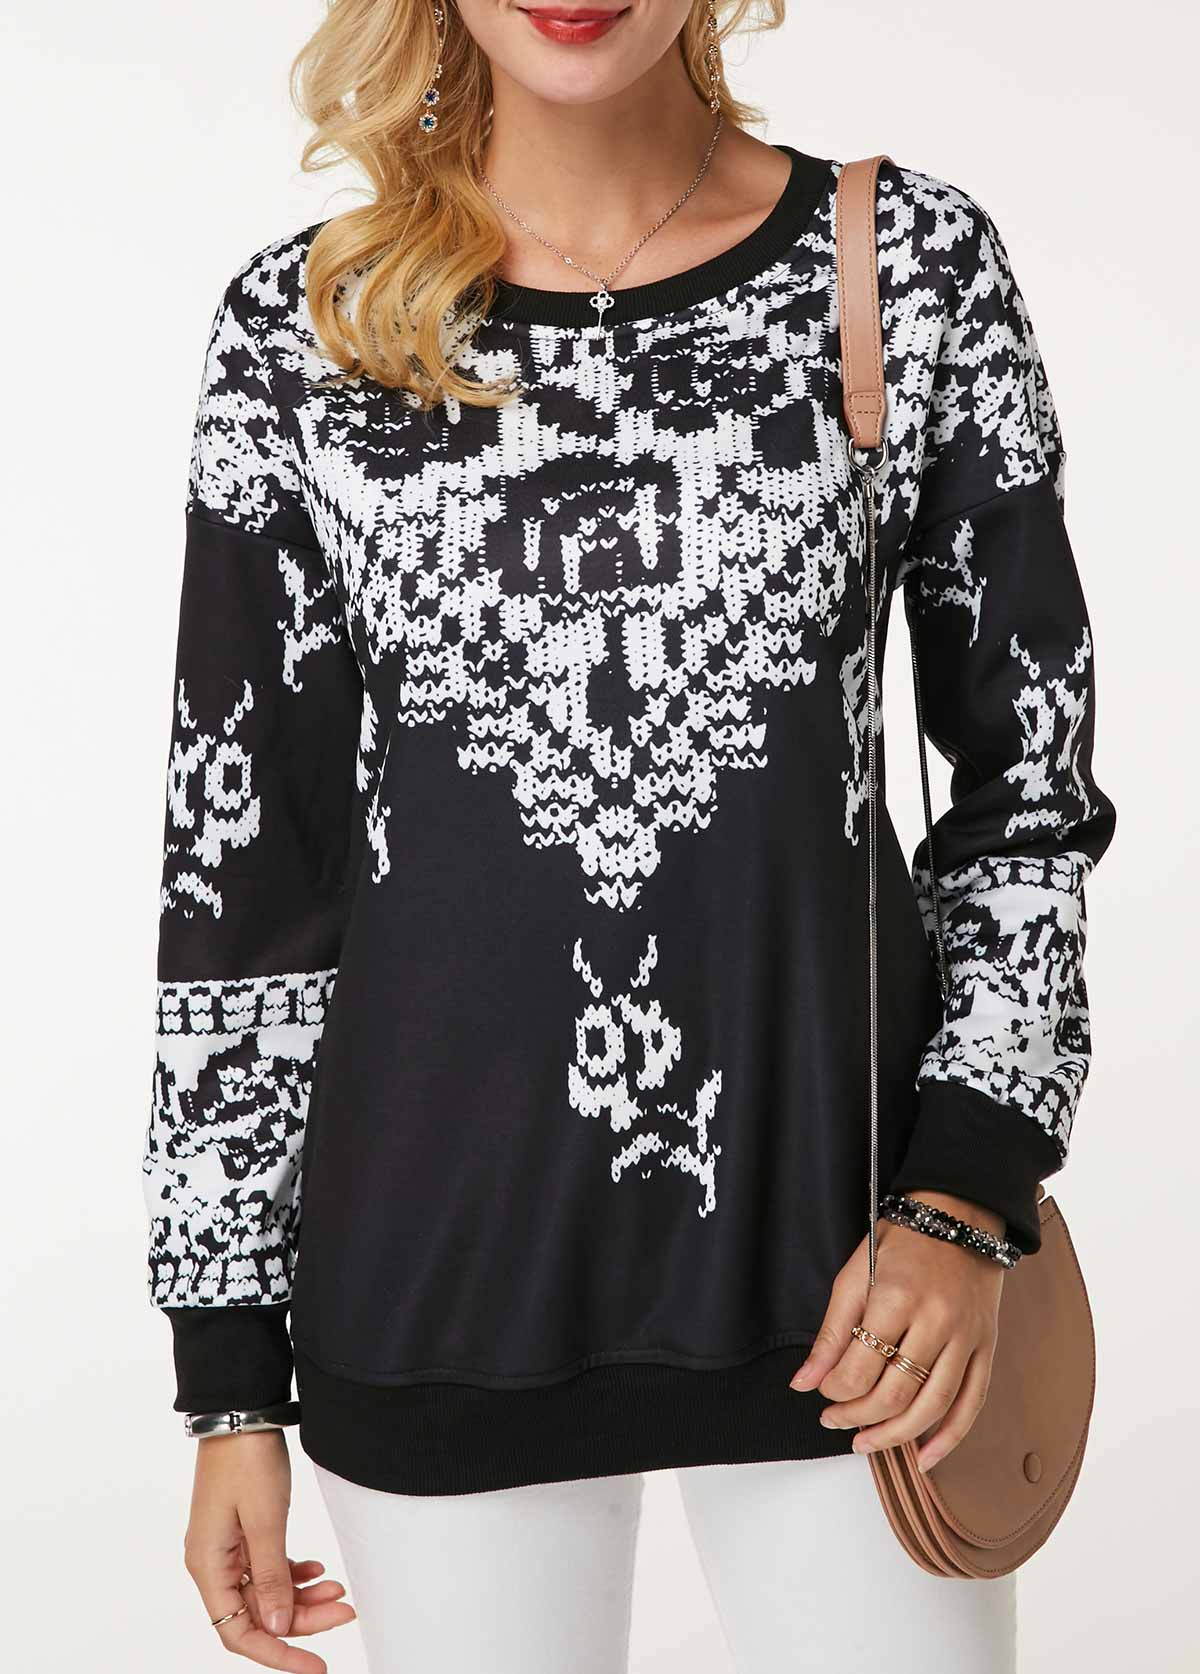 ROTITA Long Sleeve Round Neck Printed Sweatshirt